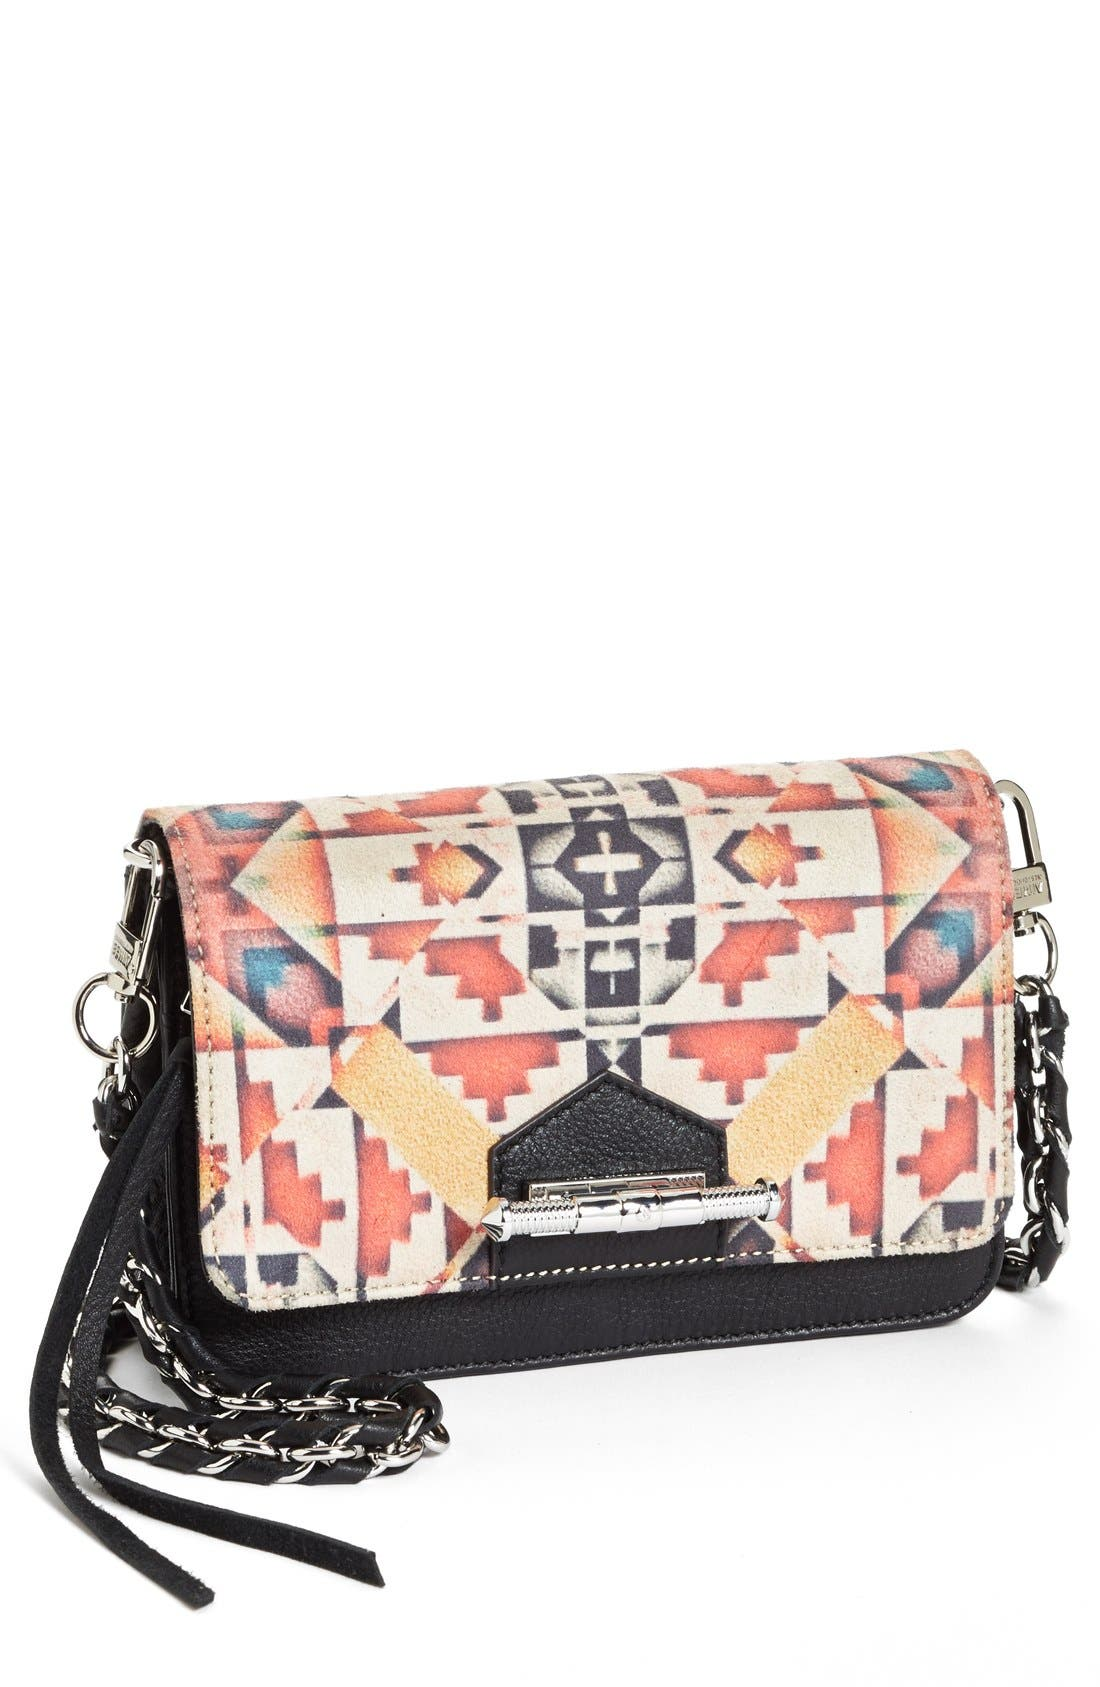 Main Image - Aimee Kestenberg Crossbody Bag